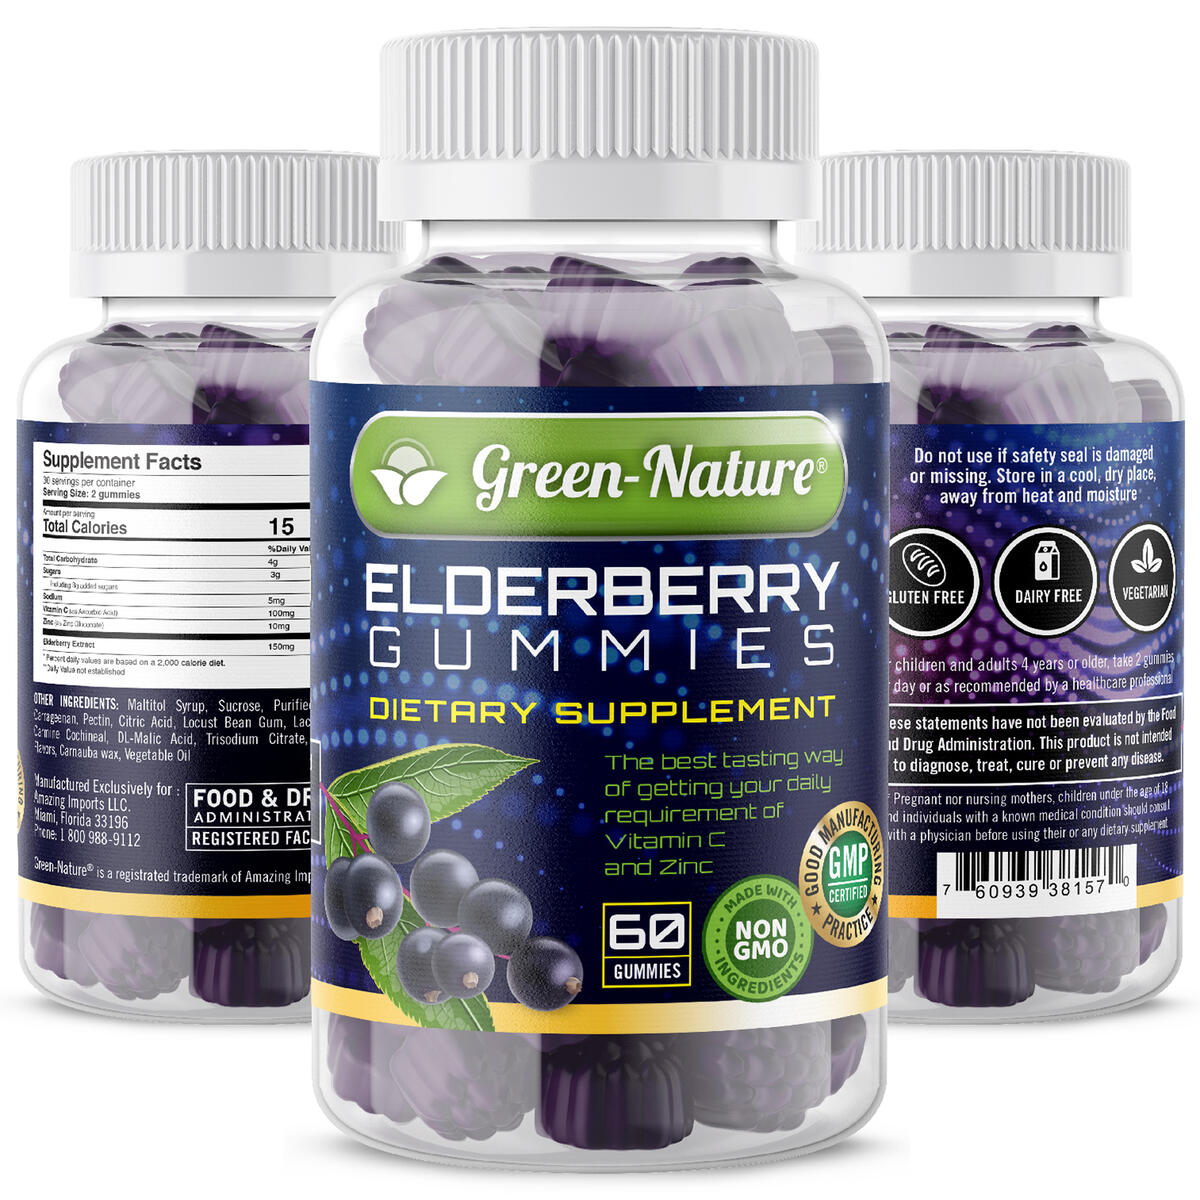 Green-Nature Elderberry Gummies for Adults and Kids Immune System Support & Metabolism Booster- 150 mg of Black Elderberry, Vitamin C, and Zinc with Gluten-Free and Non-GMO 60 Gummies.